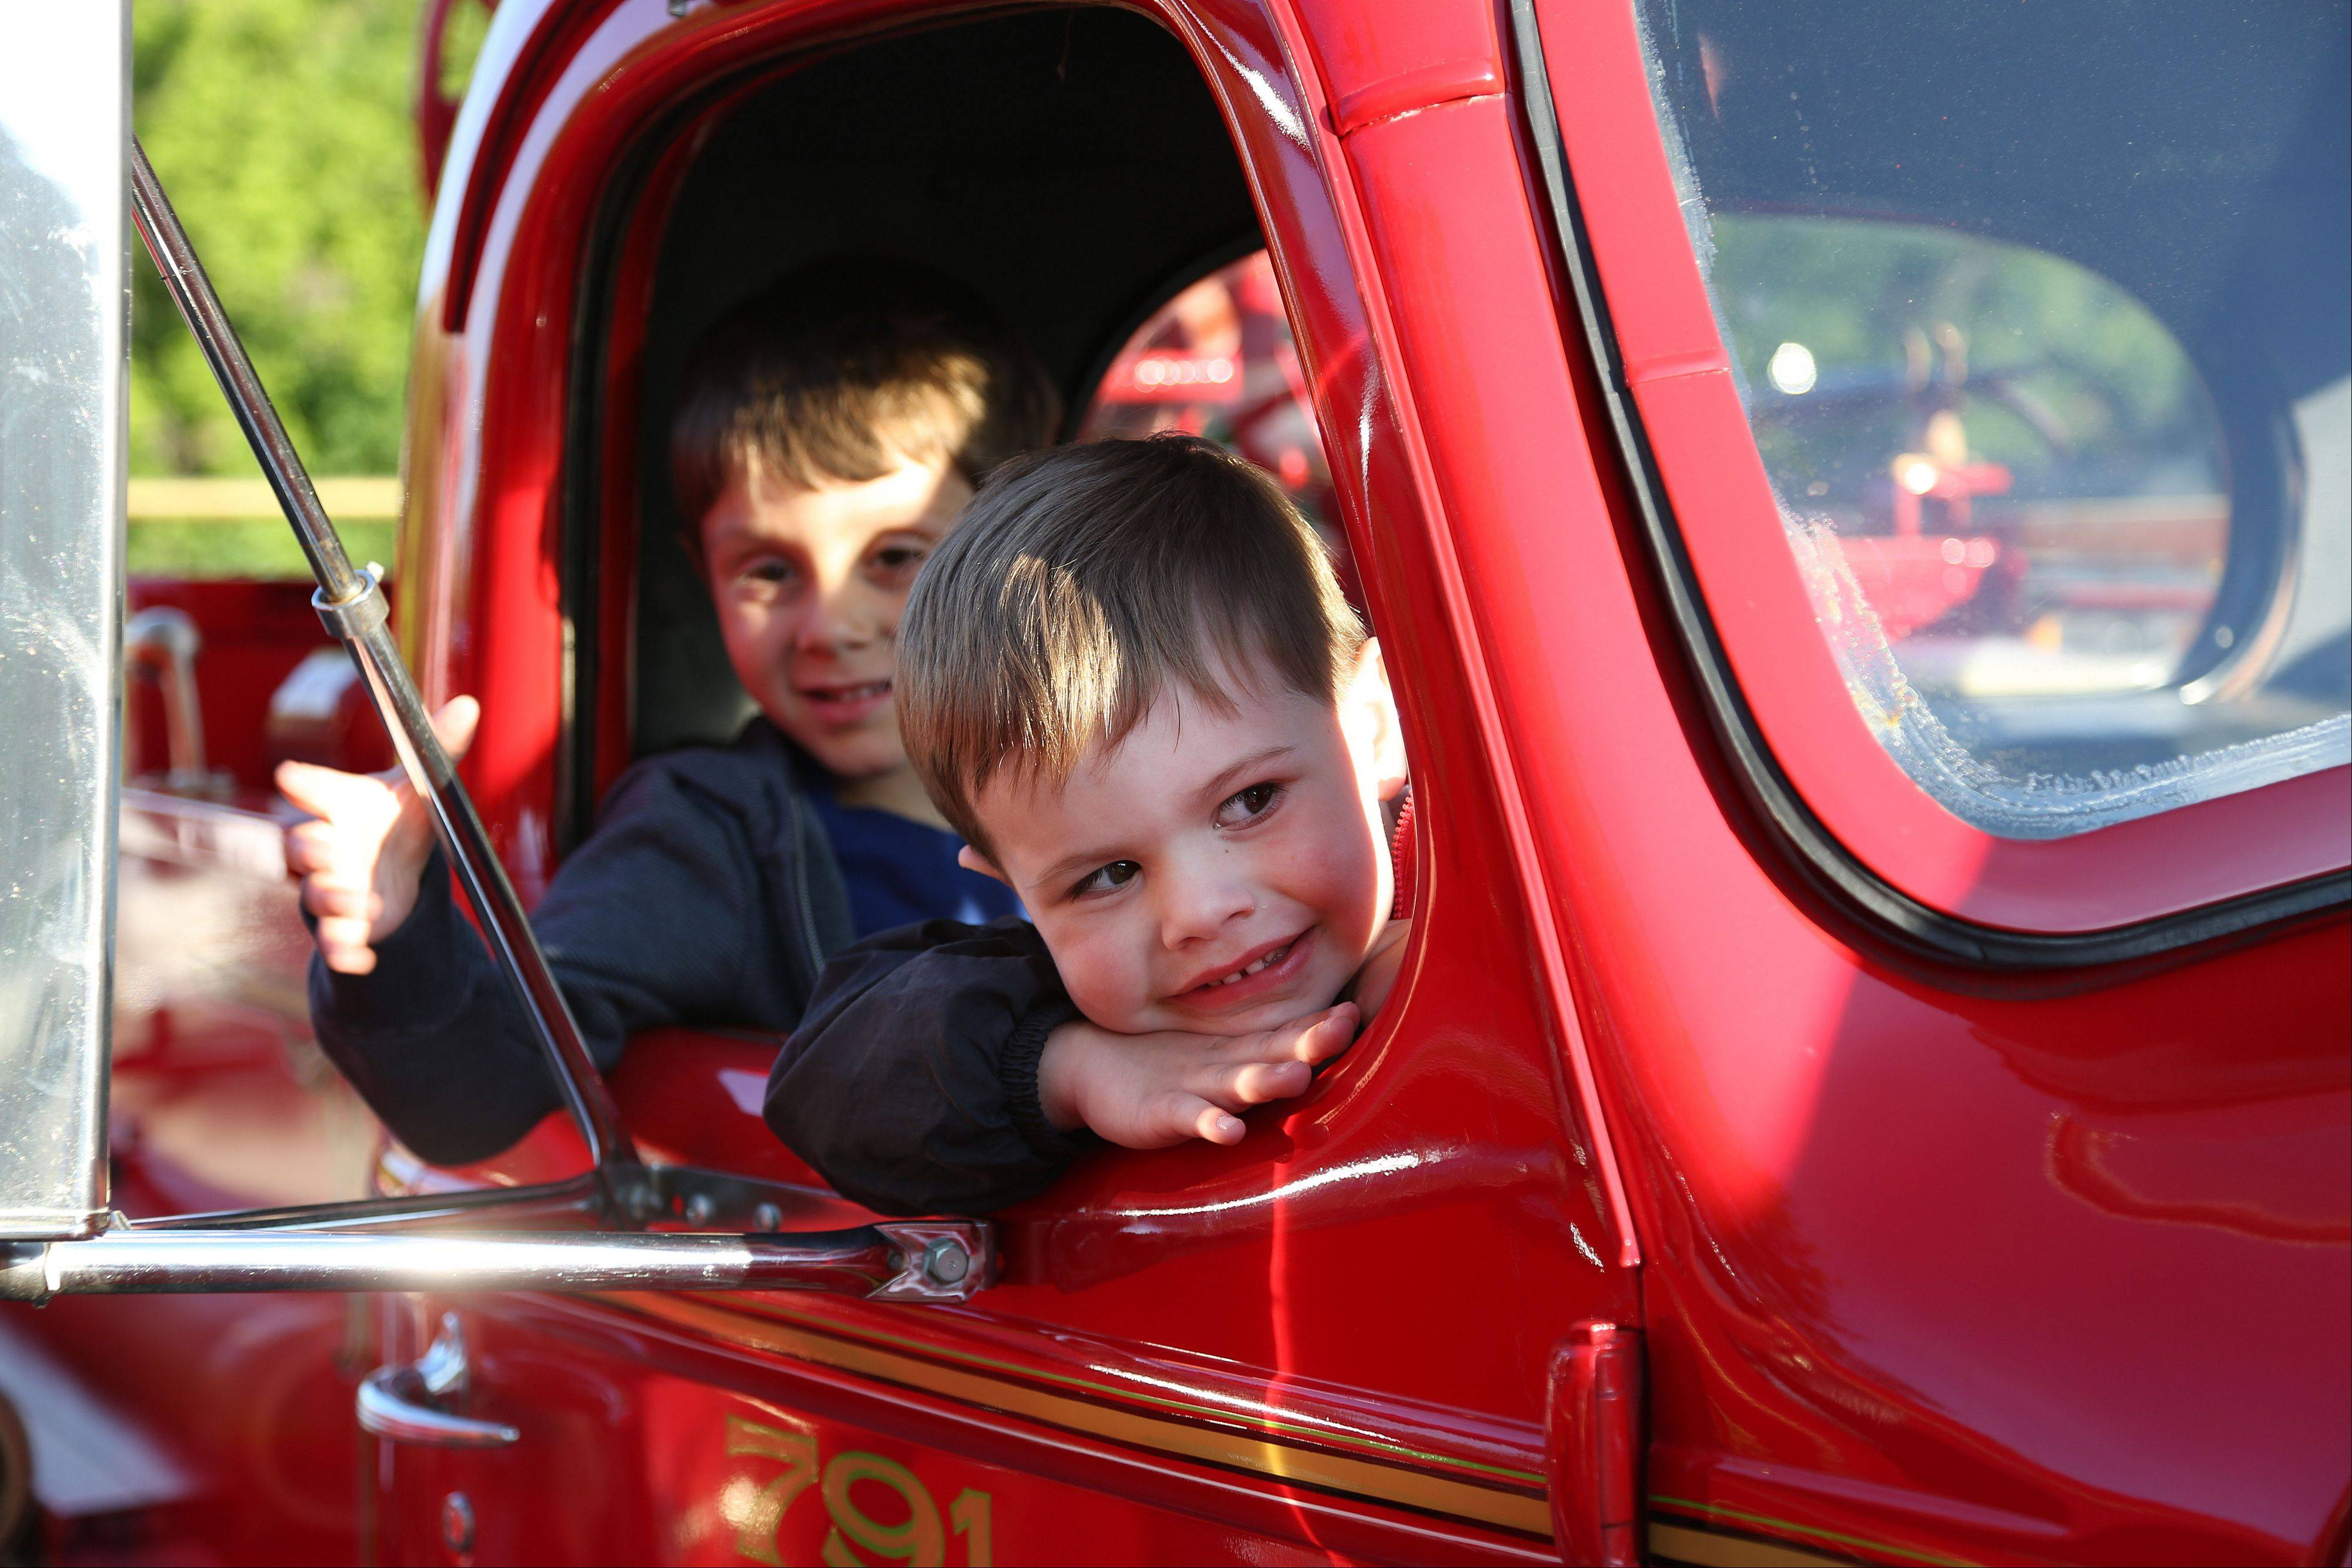 4-year-old Elliot Merryman of Libertyville, right, and 5-year-old Harrison Kaufman of Gurnee hang out the passenger window of this vintage Vernon Township fire truck at the Car Fun on 21 event in downtown Libertyville Wednesday.